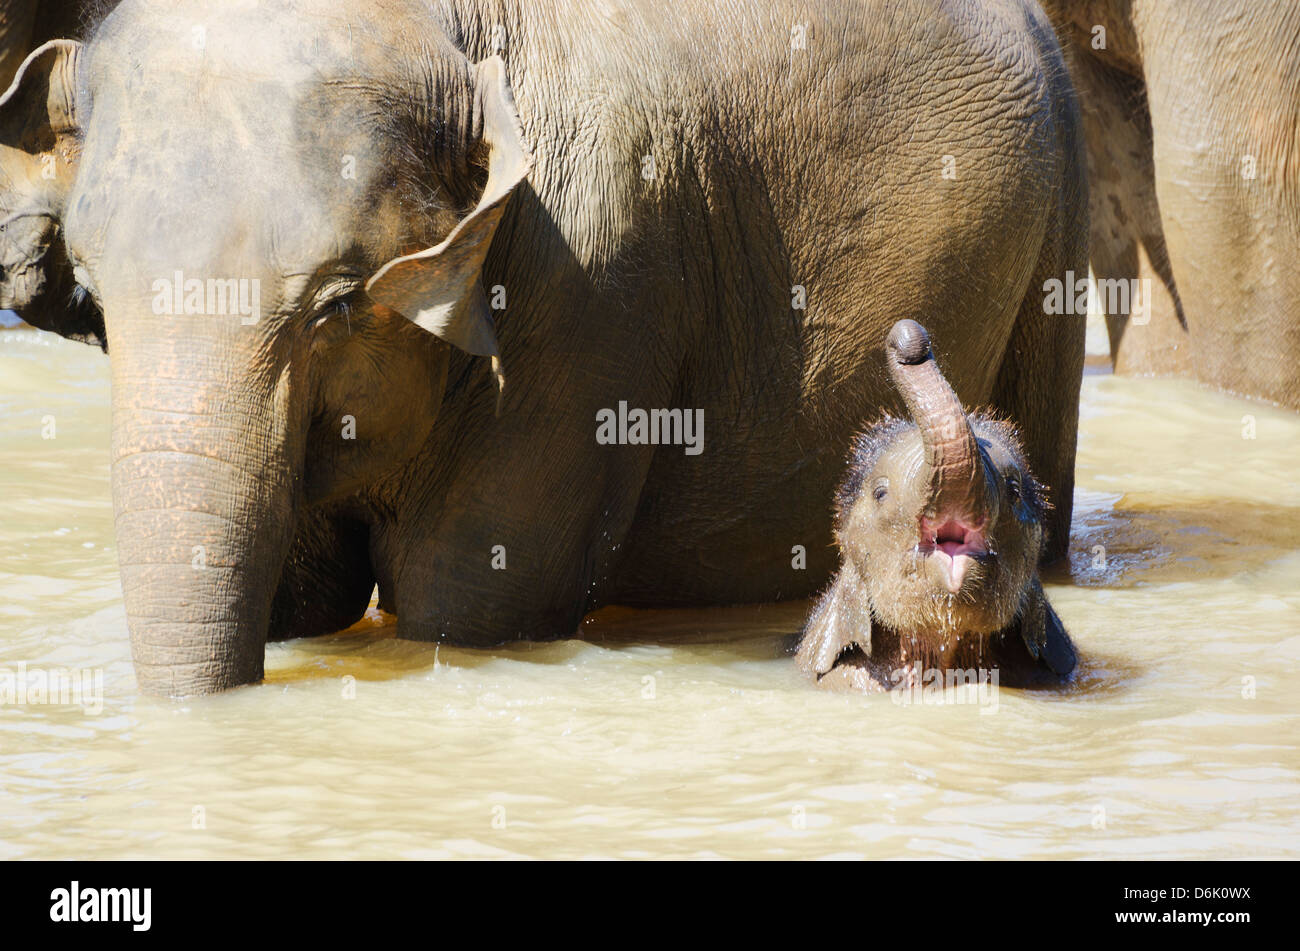 Pinnewala Elephant Orphanage near Kegalle, Hill Country, Sri Lanka, Asia - Stock Image